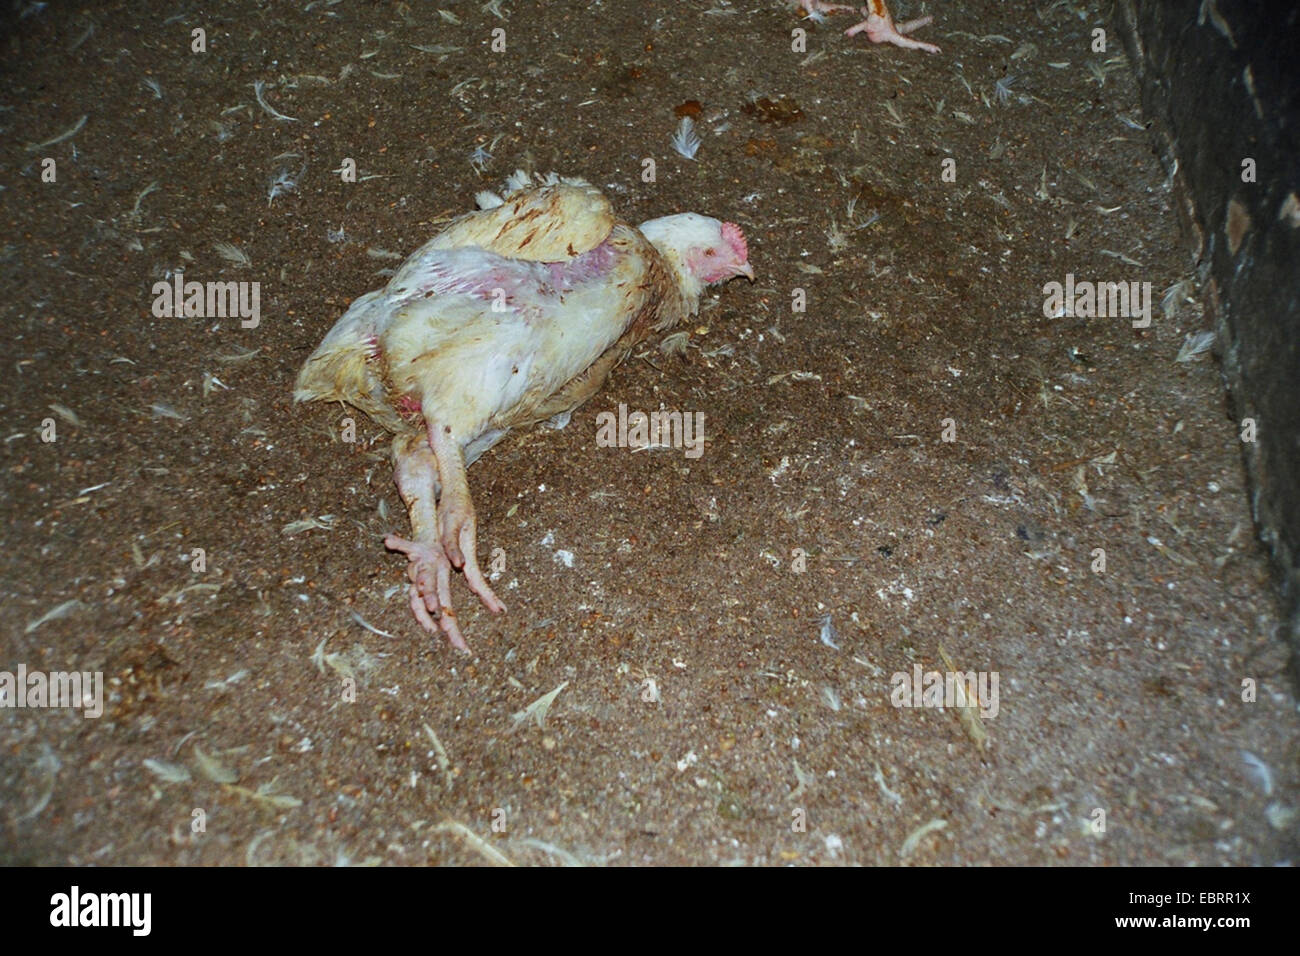 domestic fowl (Gallus gallus f. domestica), one of many broiler chickens dying during industrial farming is lying - Stock Image